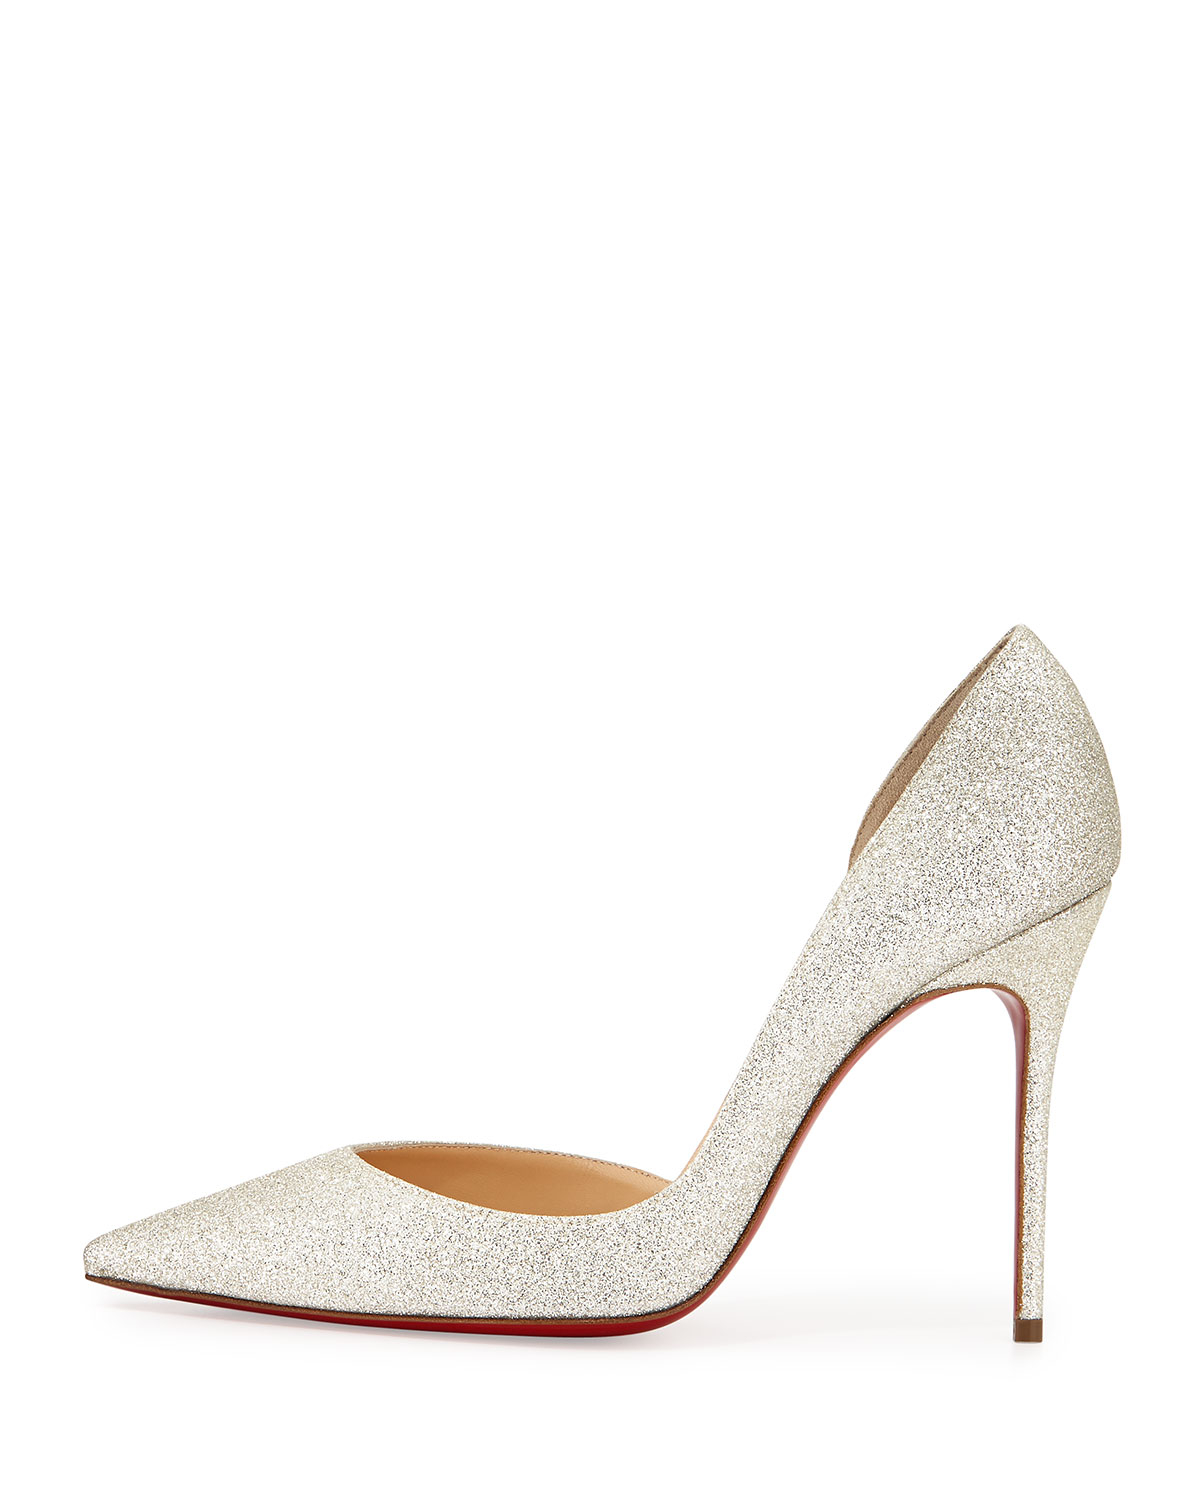 best replica christian louboutins - christian louboutin demi you half d'orsay peep-toe red sole pump ...